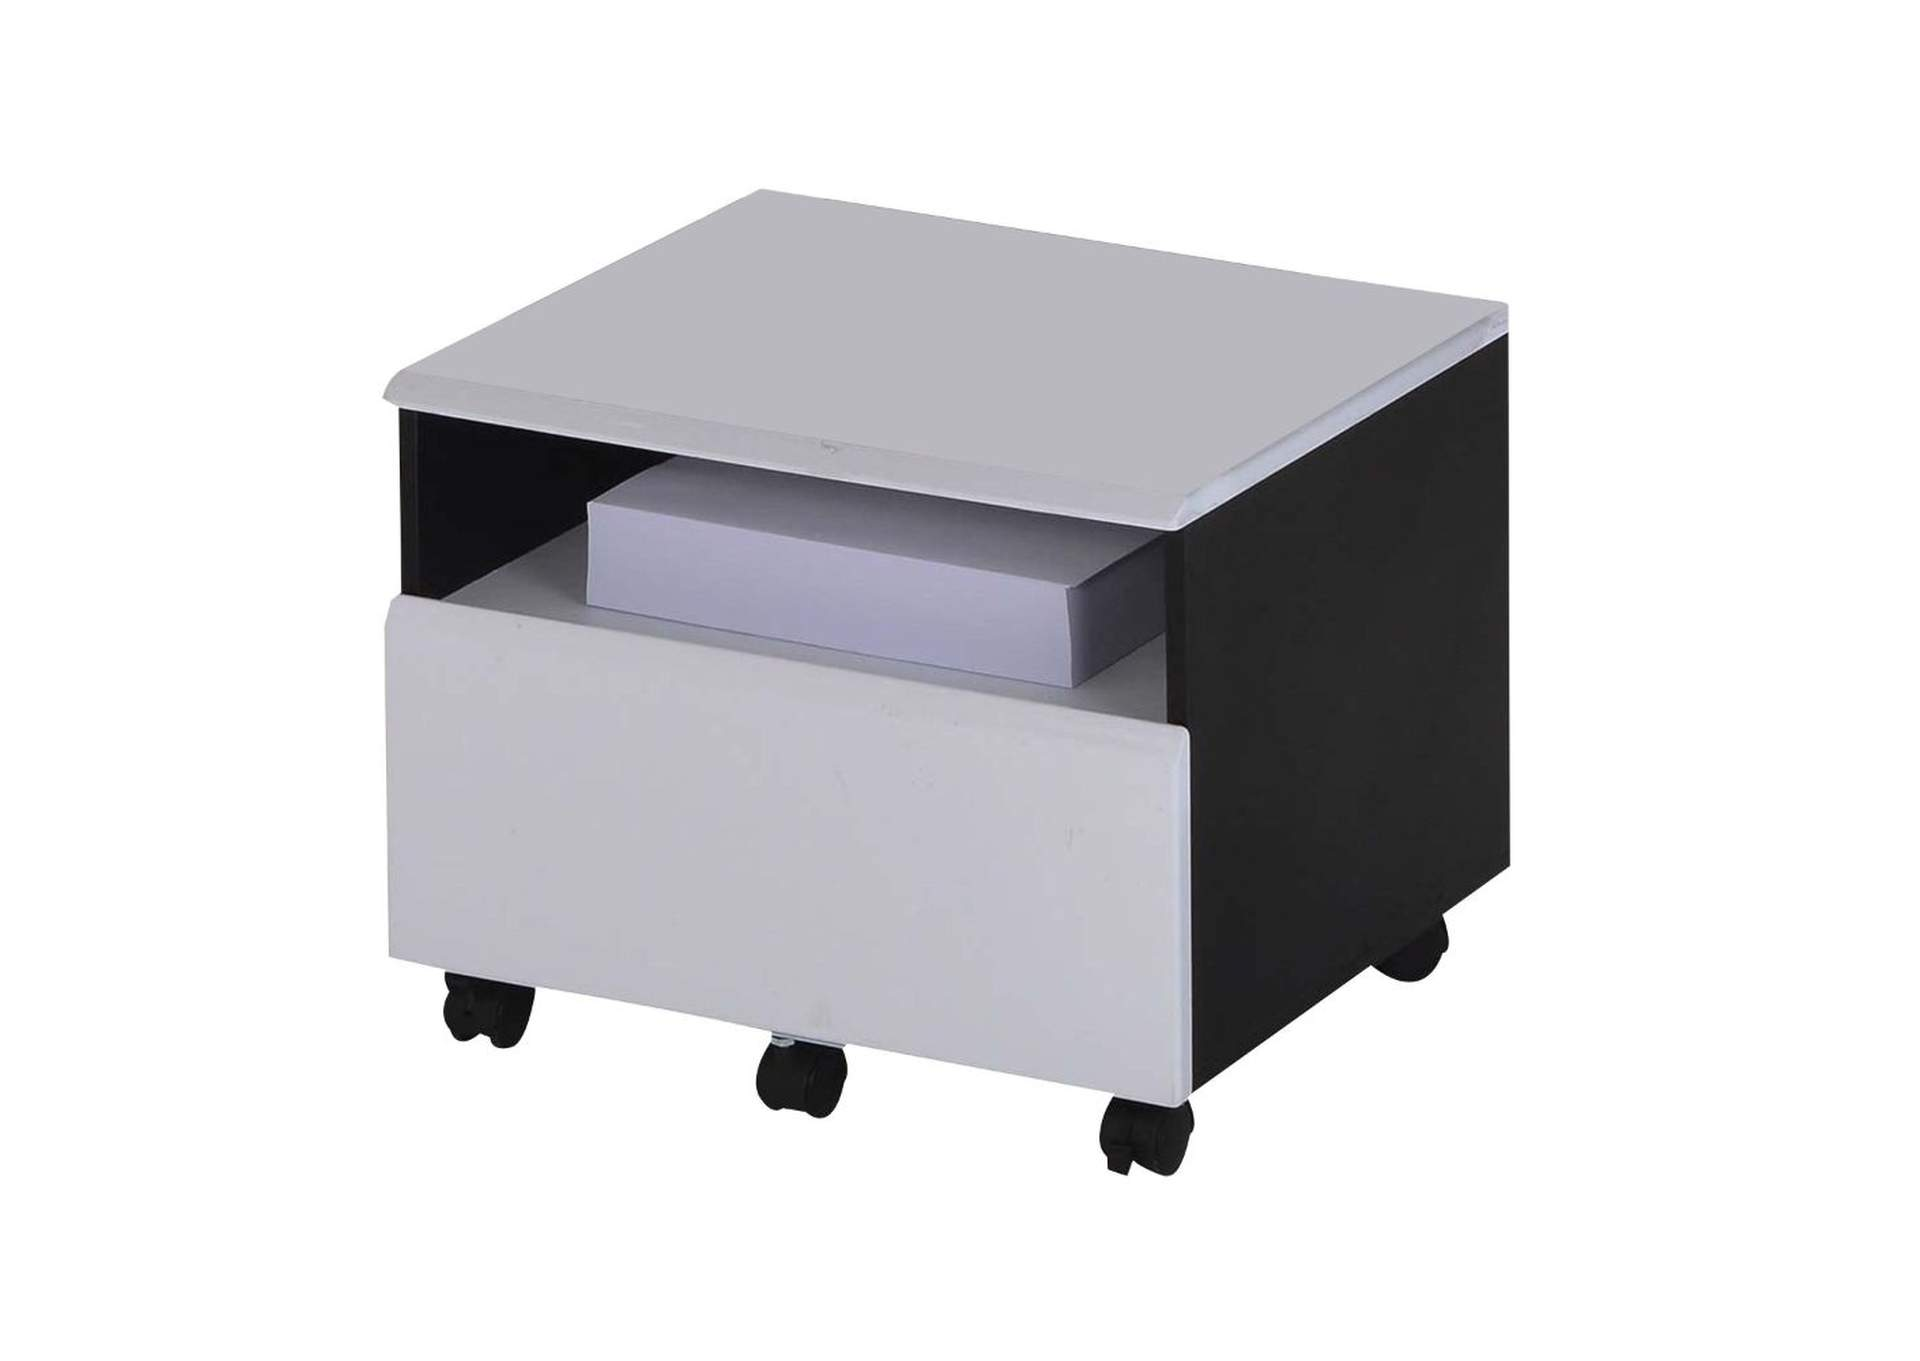 Ellis Black & White File Cabinet,Acme